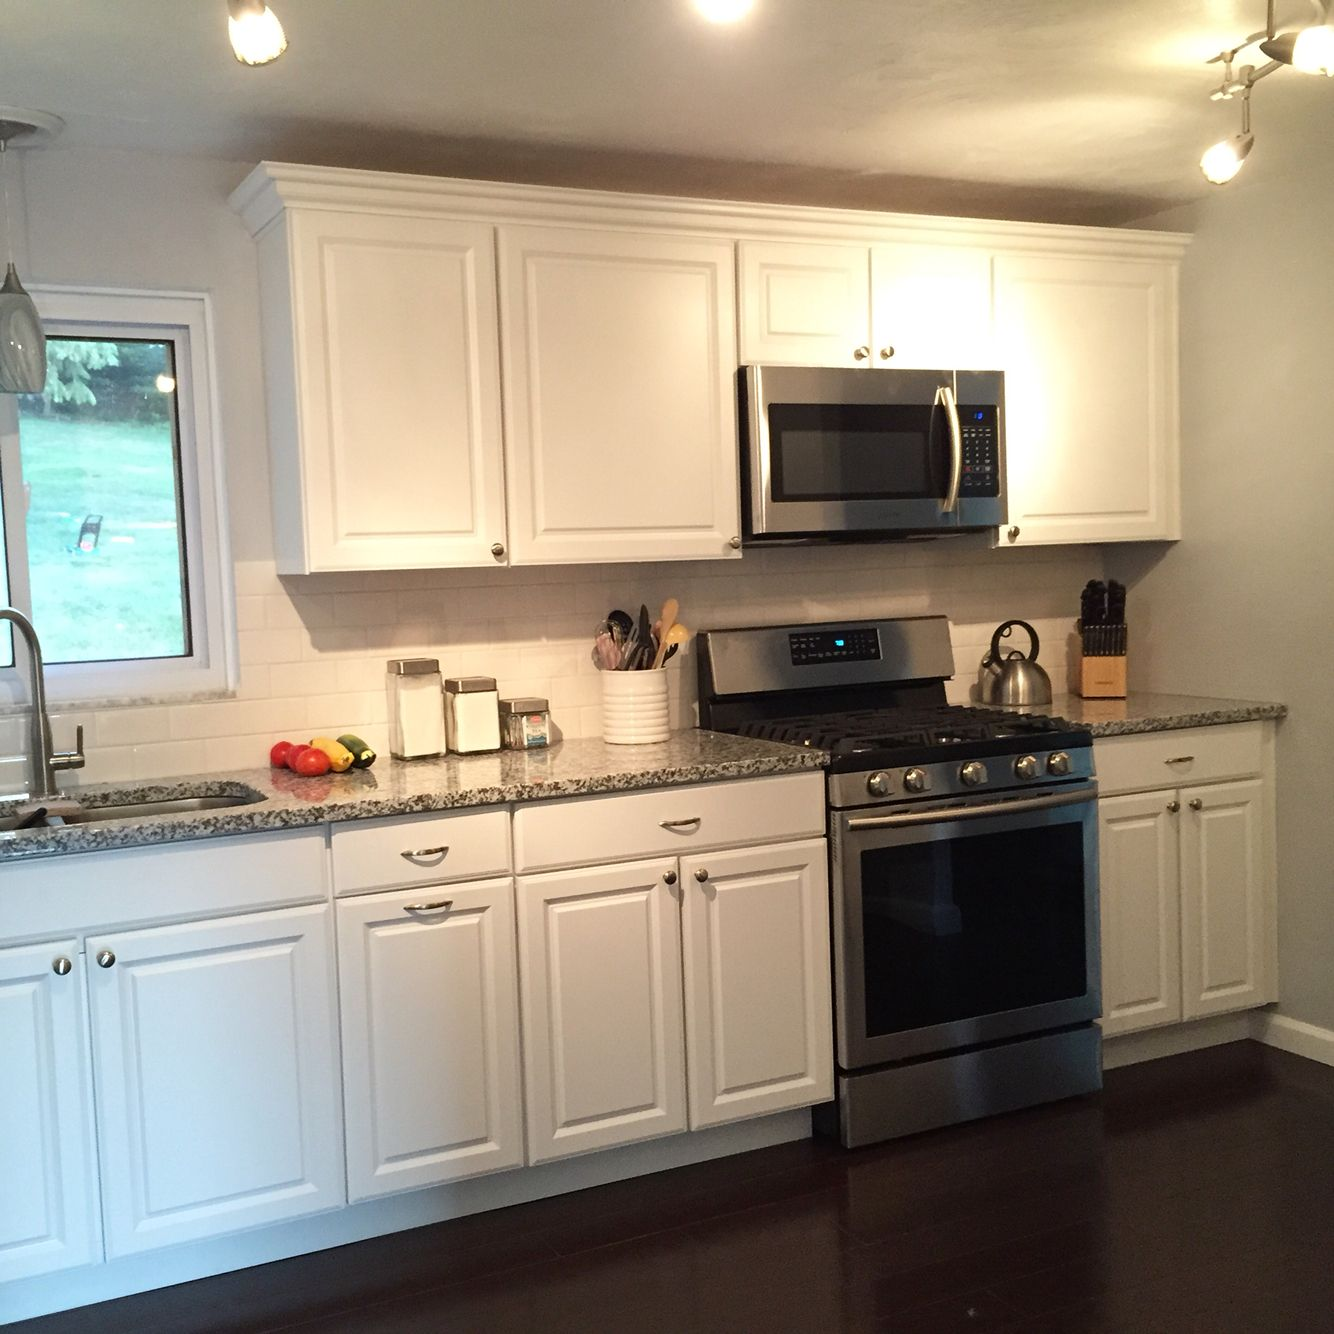 Kitchen Floor Tile Dark Cabinets: Loving Our White Cabinets, Luna Pearl Granite Countertops